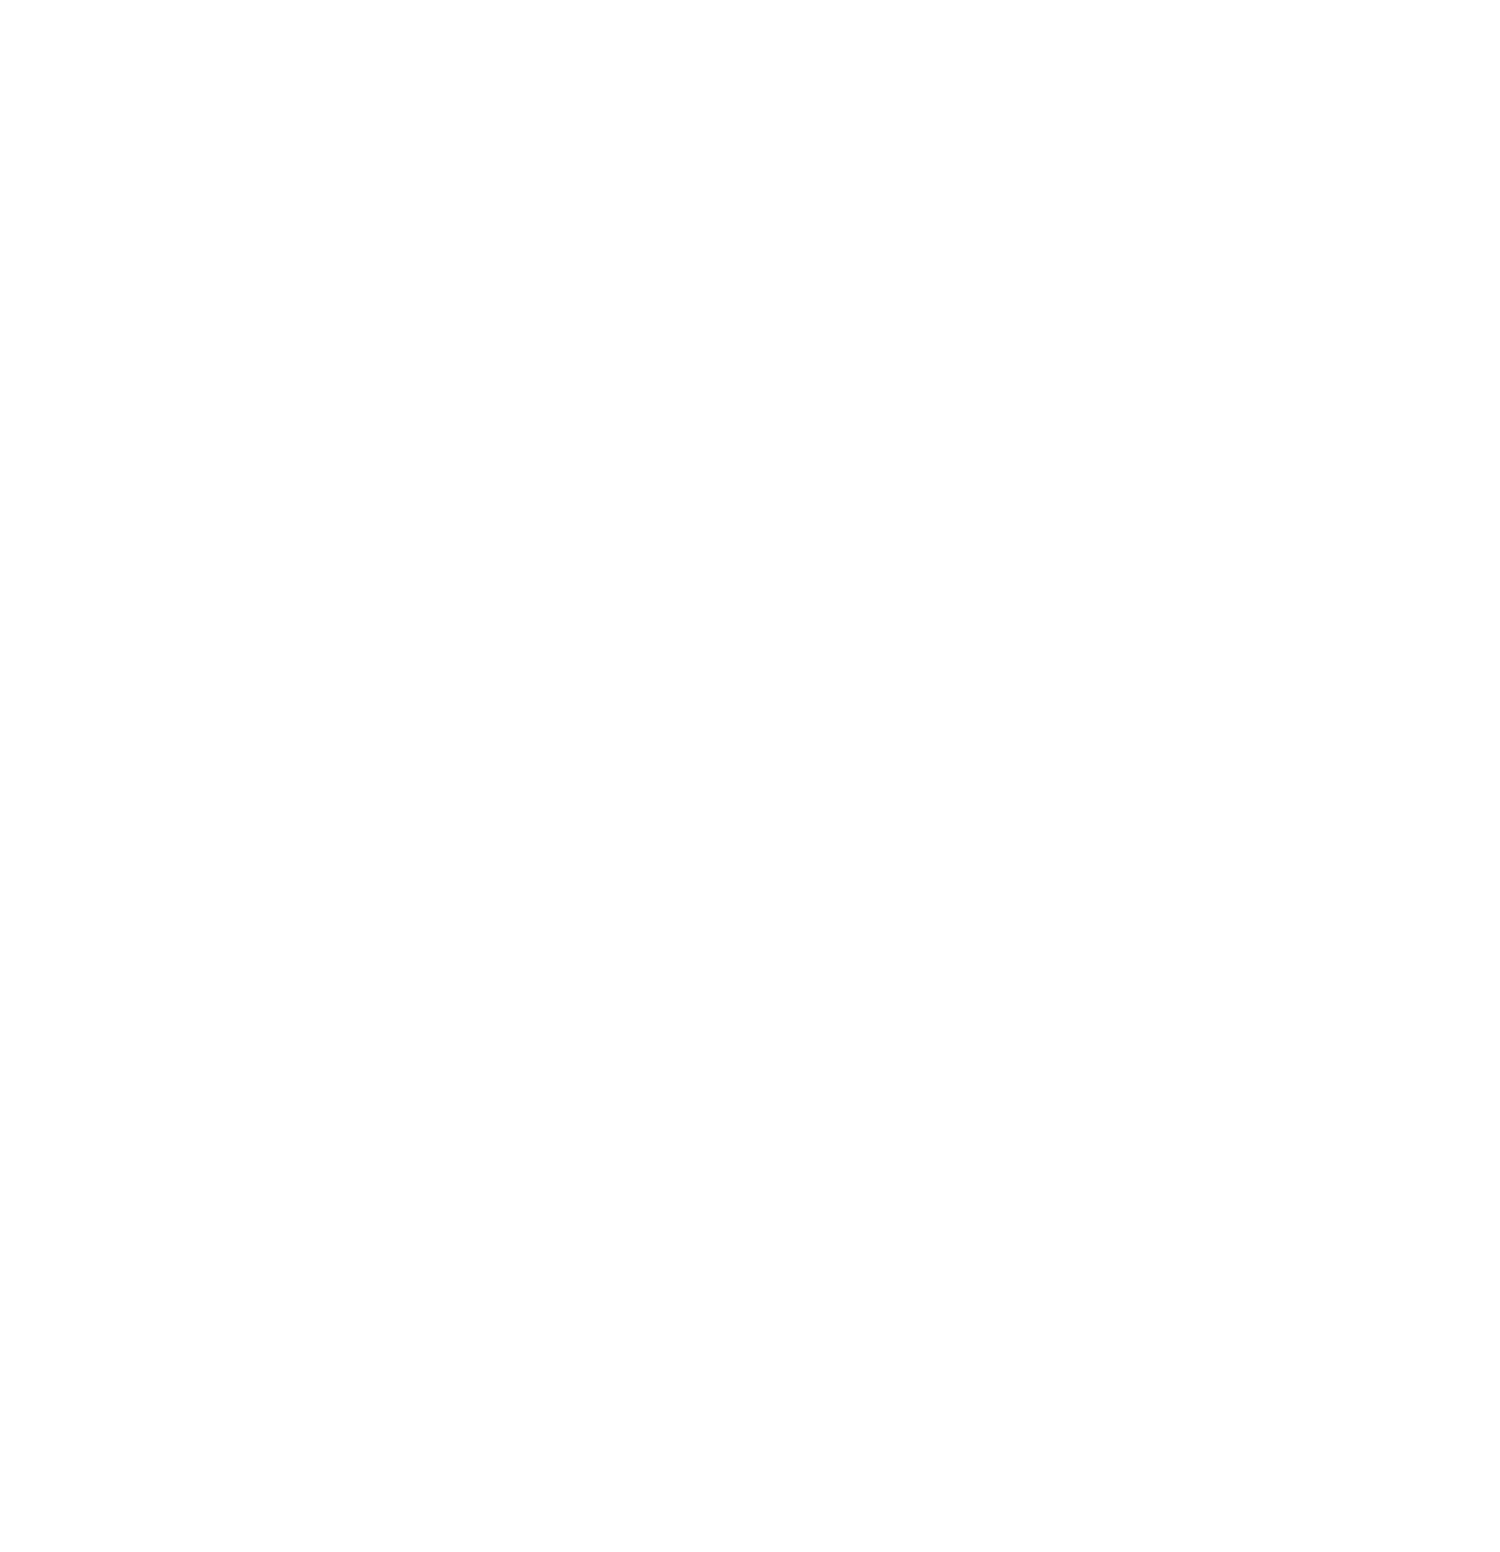 Midwest Canna Expos